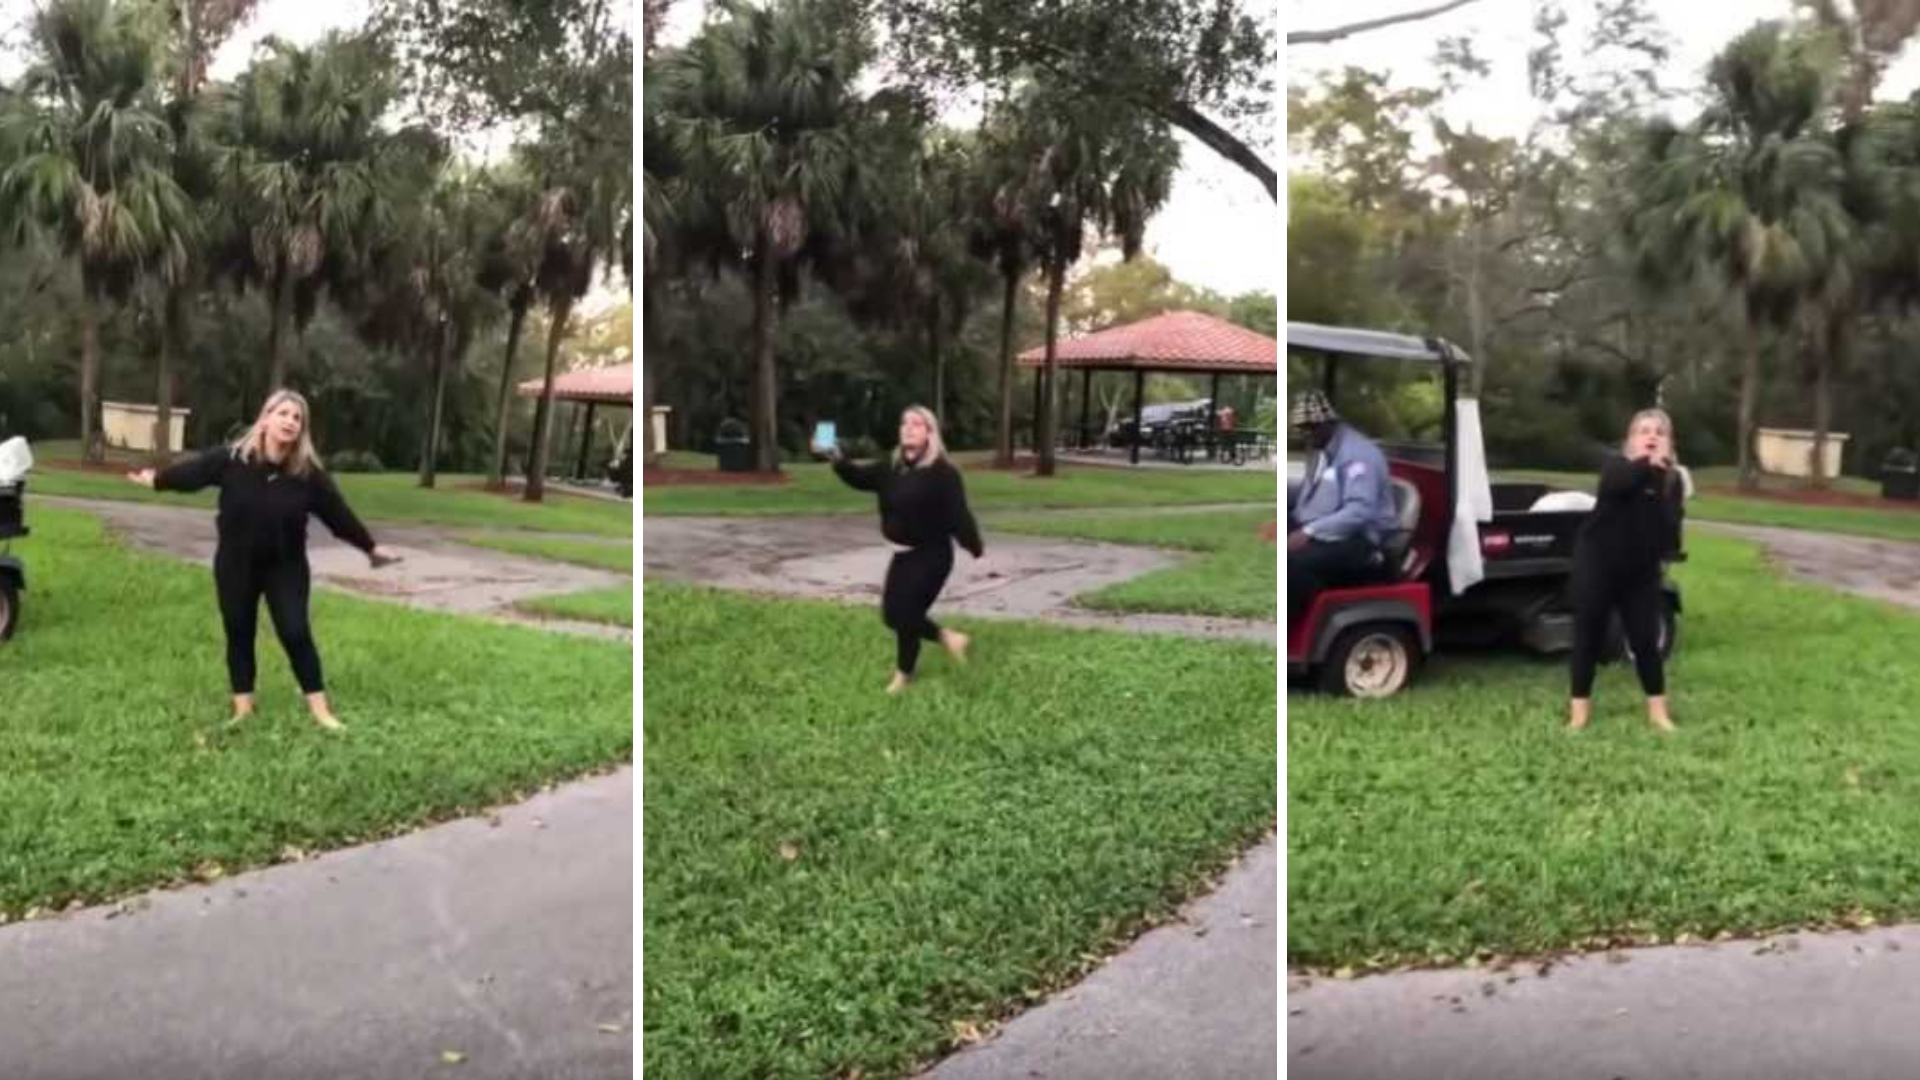 woman yells at photographer in park image